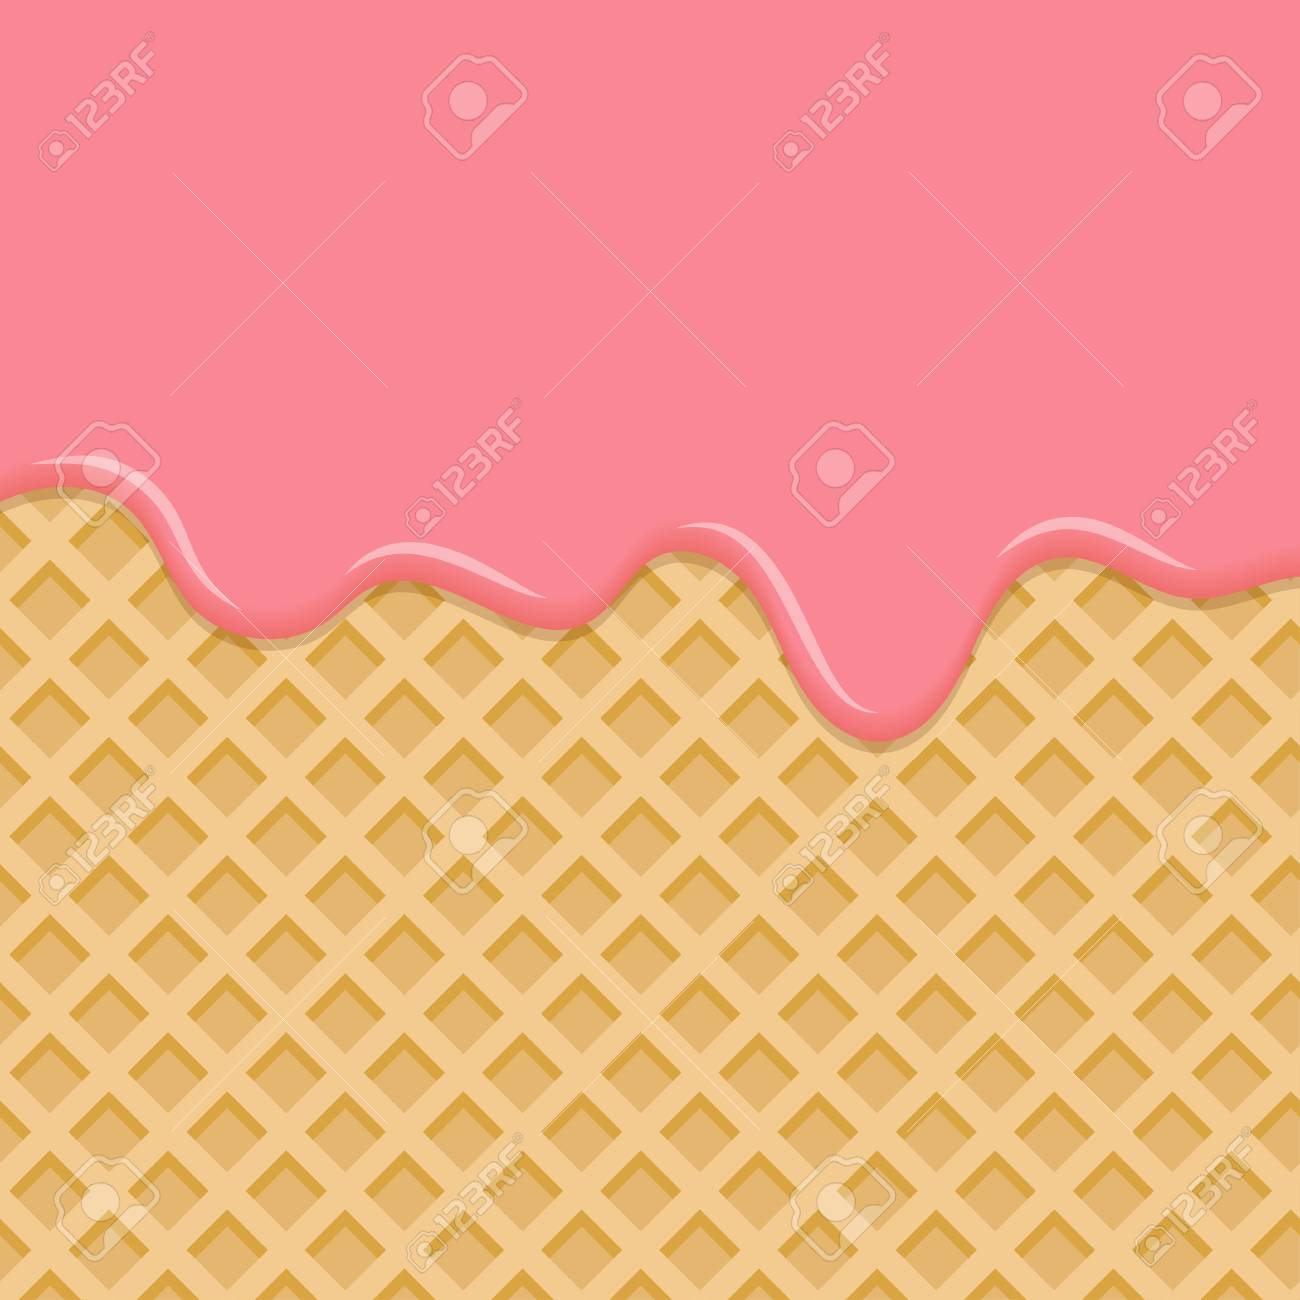 Sweet waffle with pink glaze. Dessert with pink cream, melted on wafer background. Vector Illustration - 95569024